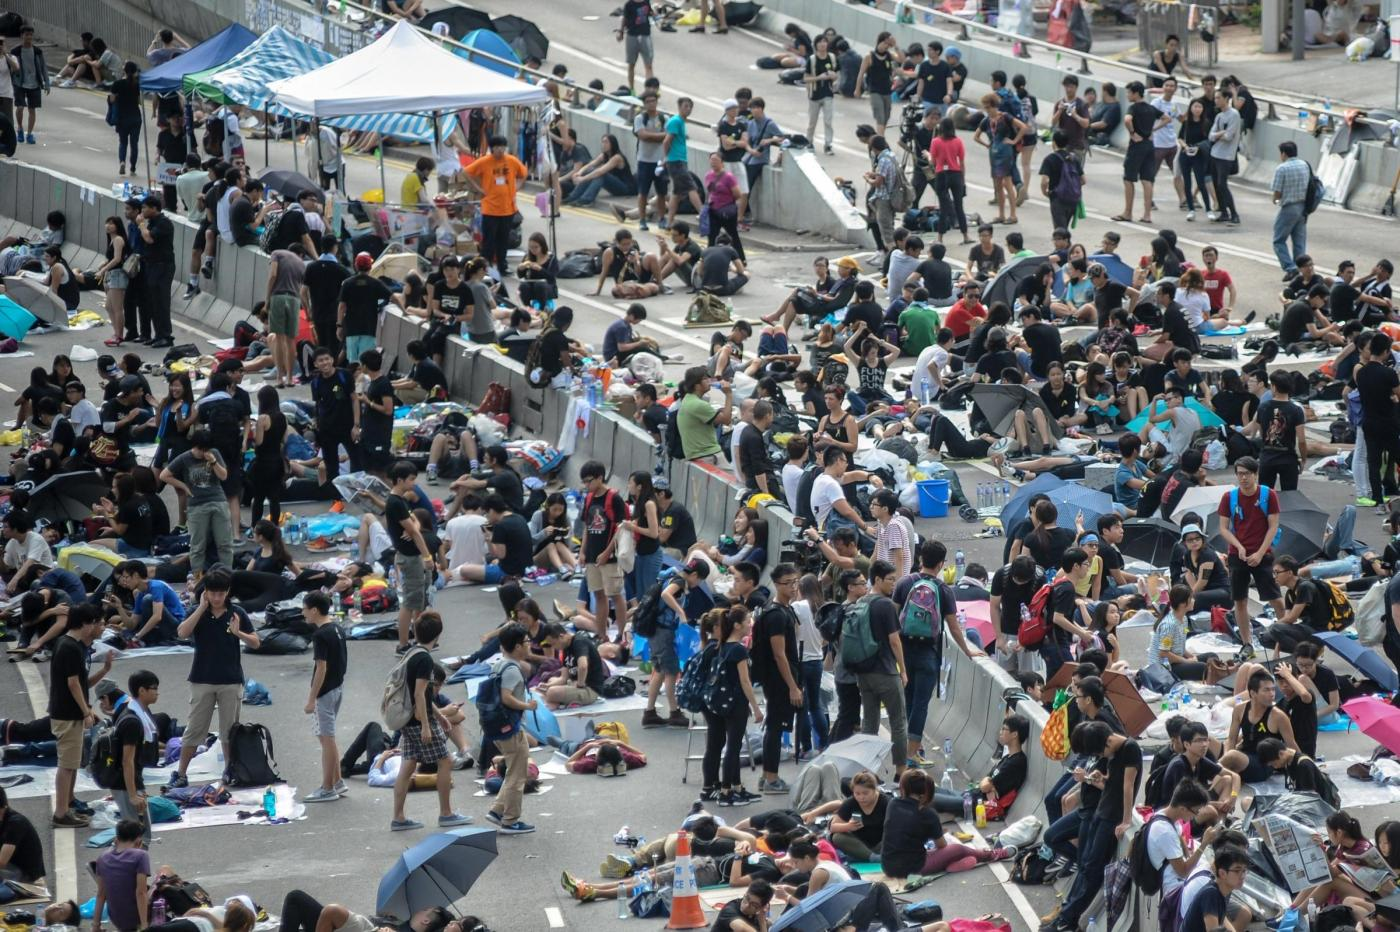 FireChat: l'app che supporta le proteste a Hong Kong